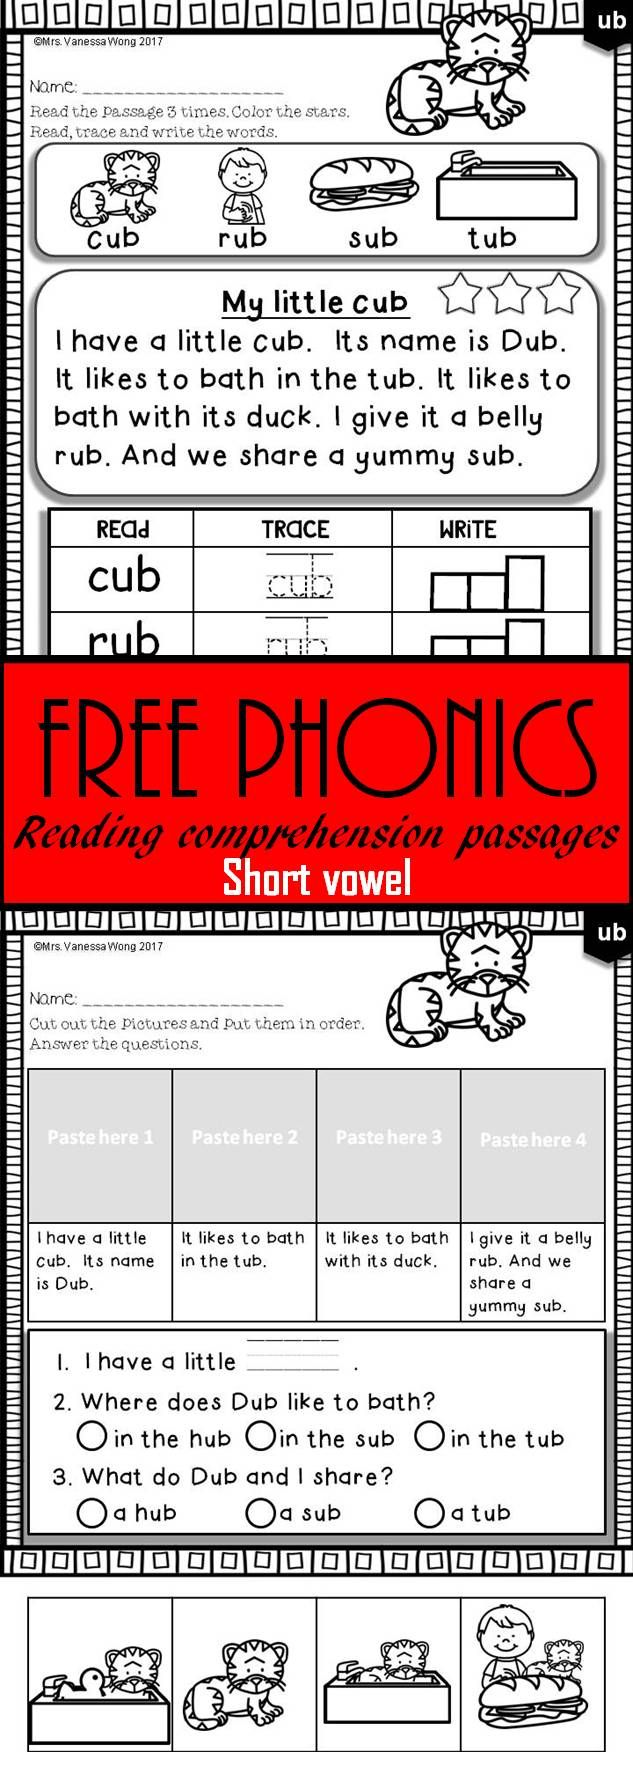 Free Phonics Activities And Passages For Vocabulary Fluency And Reading Comprehension And Story Sequence Phonics Free Phonics Reading Reading Comprehension [ 1766 x 633 Pixel ]